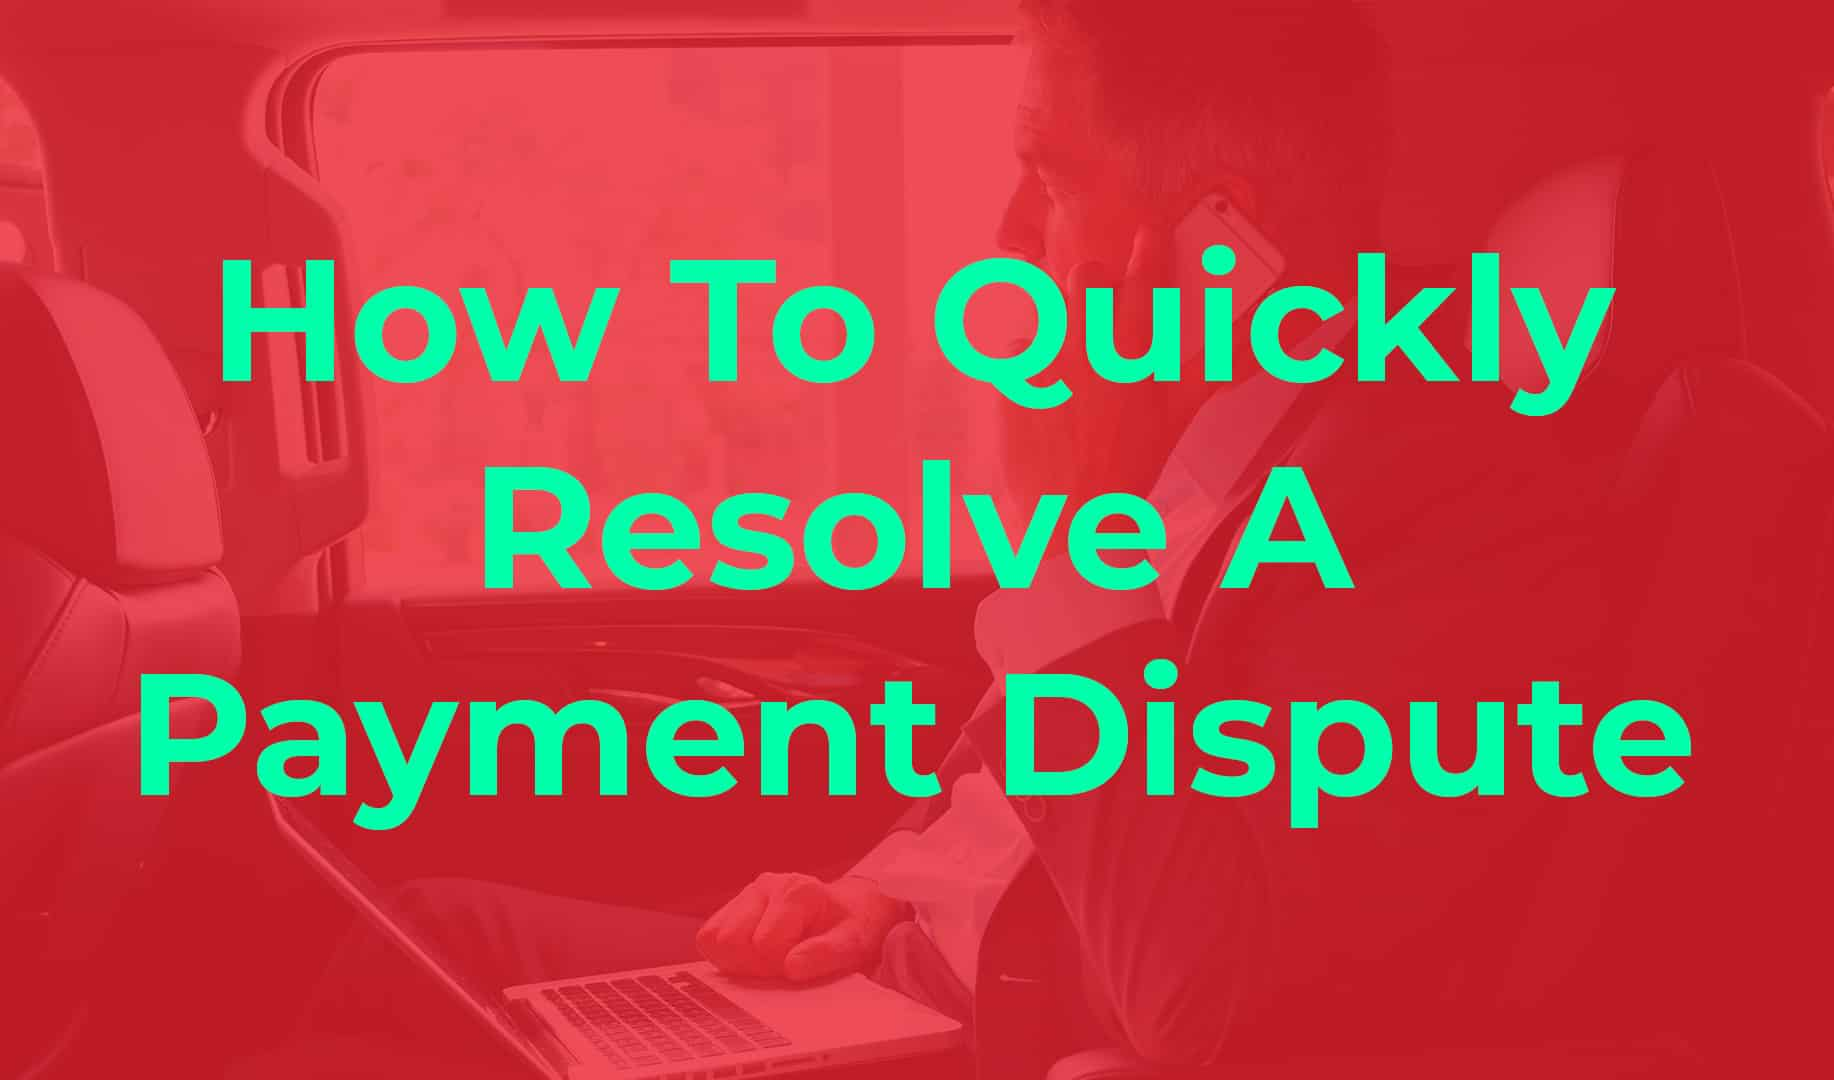 How To Quickly Resolve A Payment Dispute